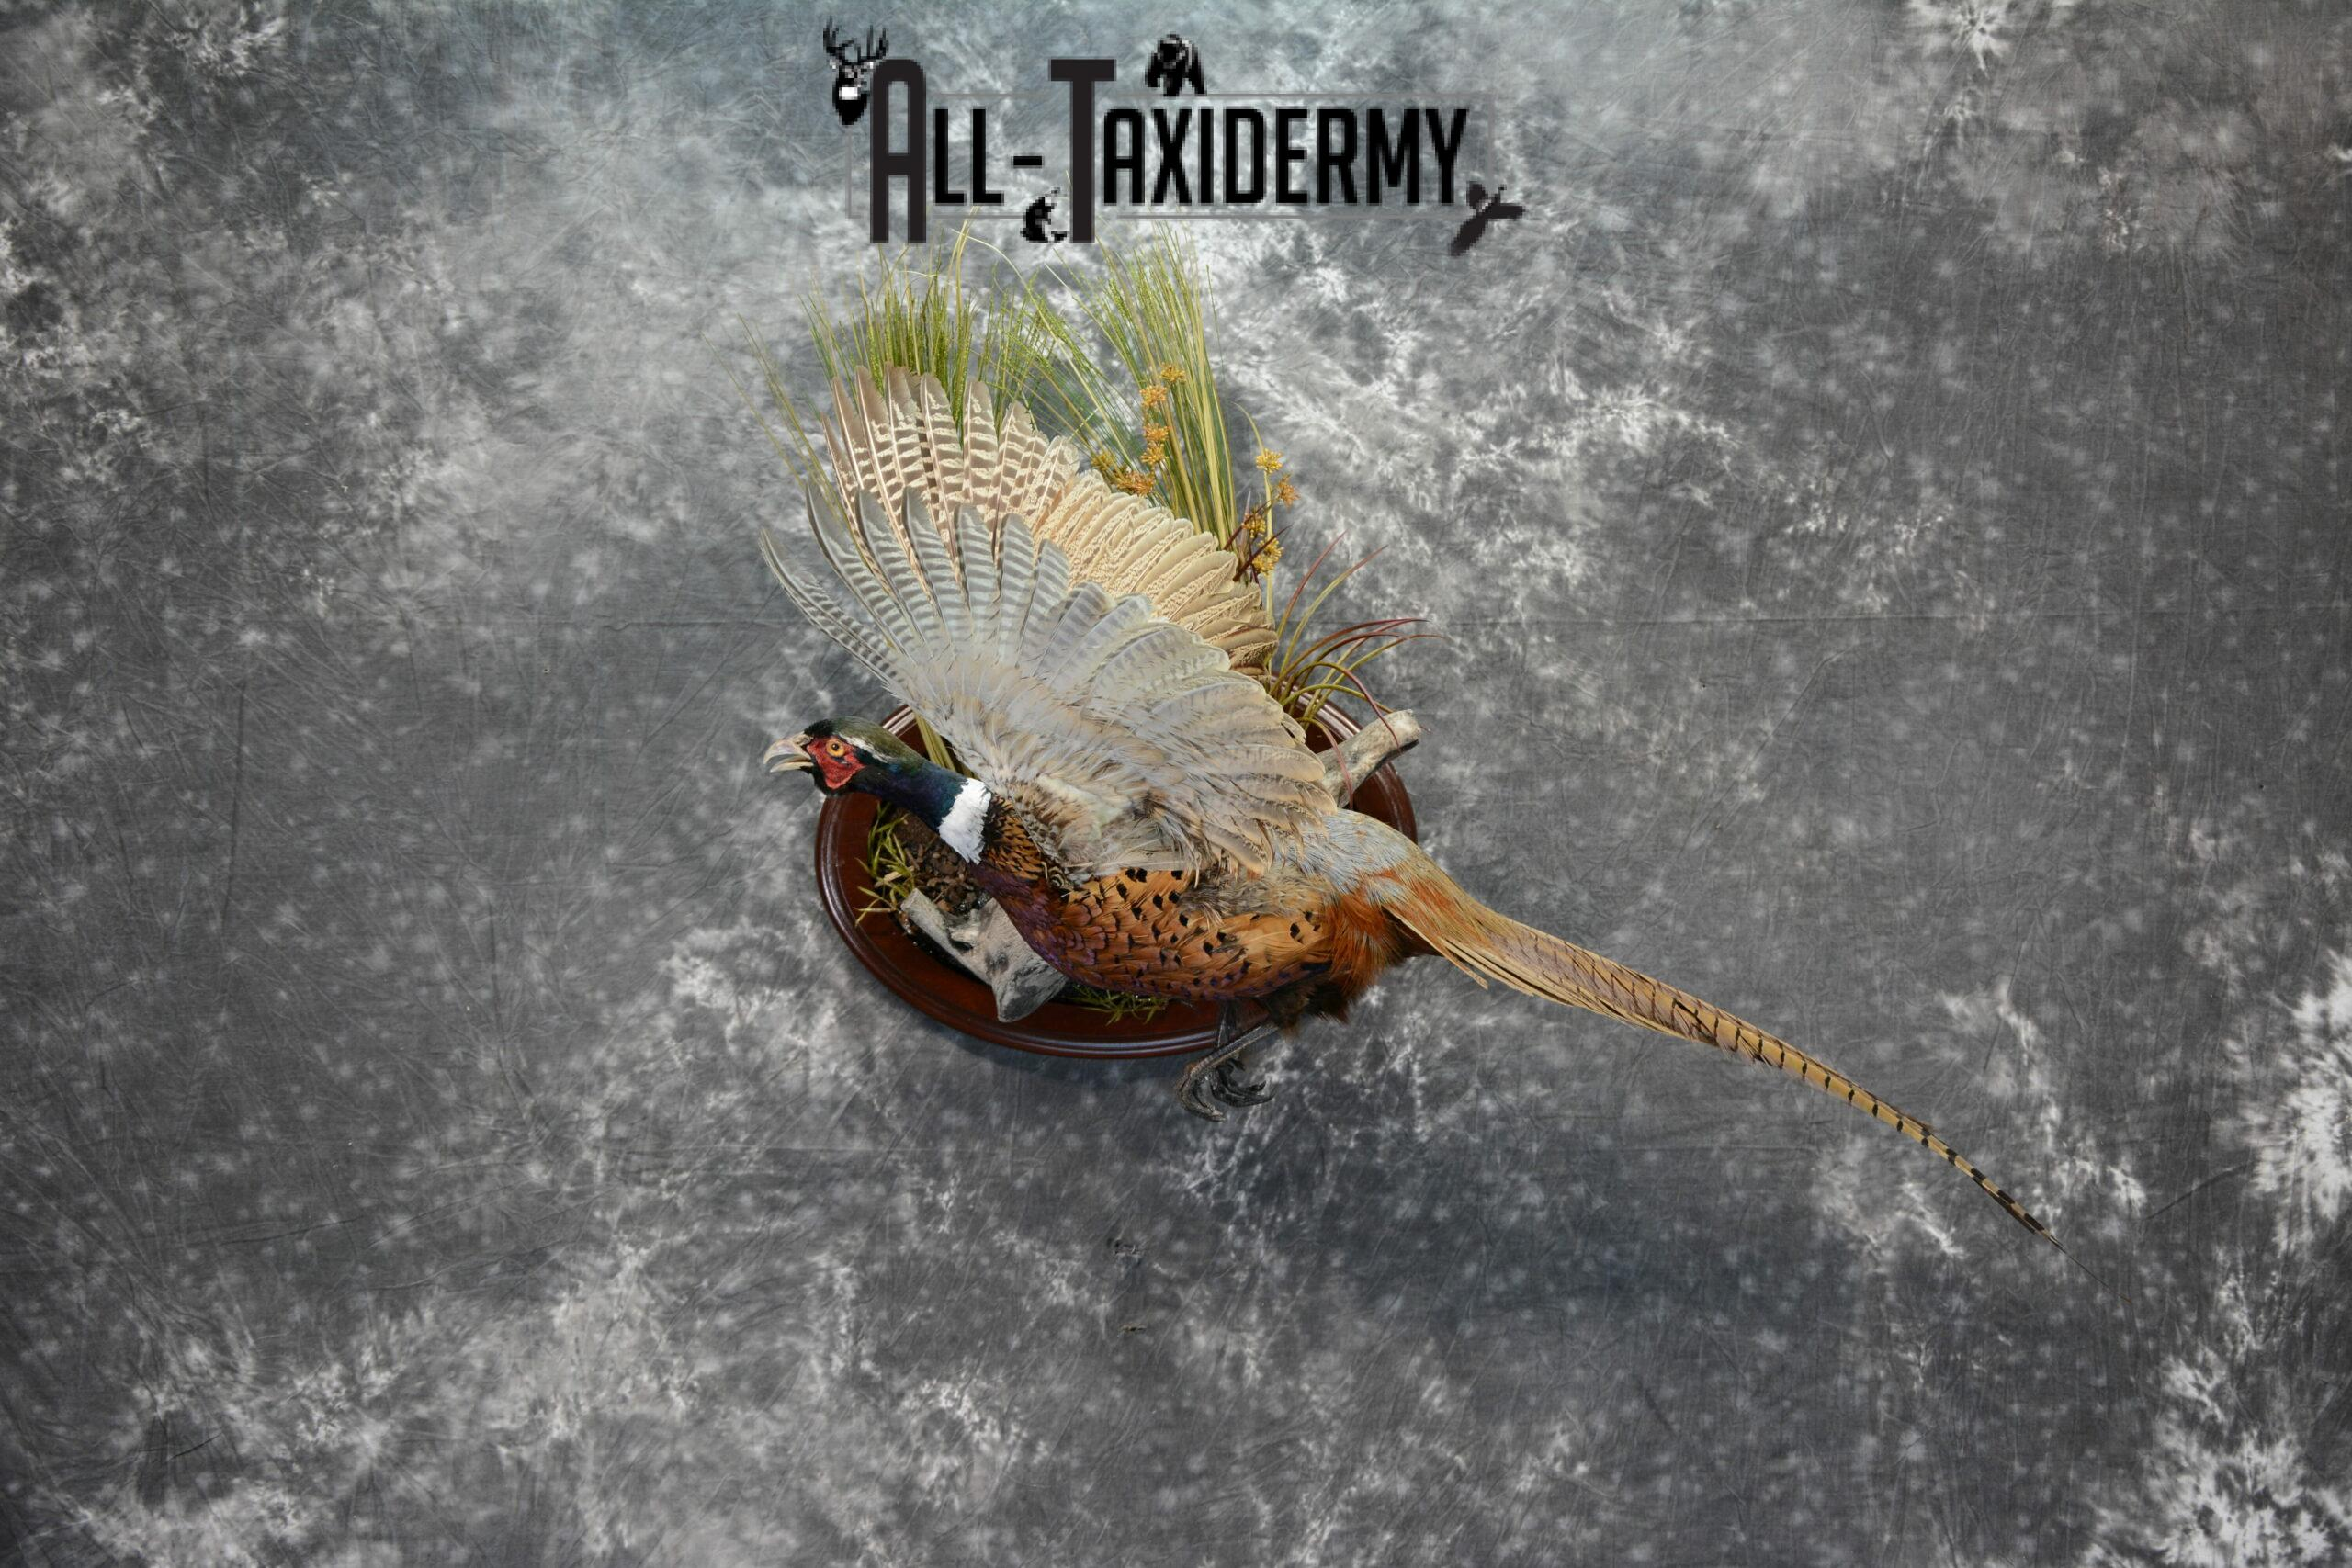 Ring-Necked Pheasant Taxidermy for Sale SKU 1069